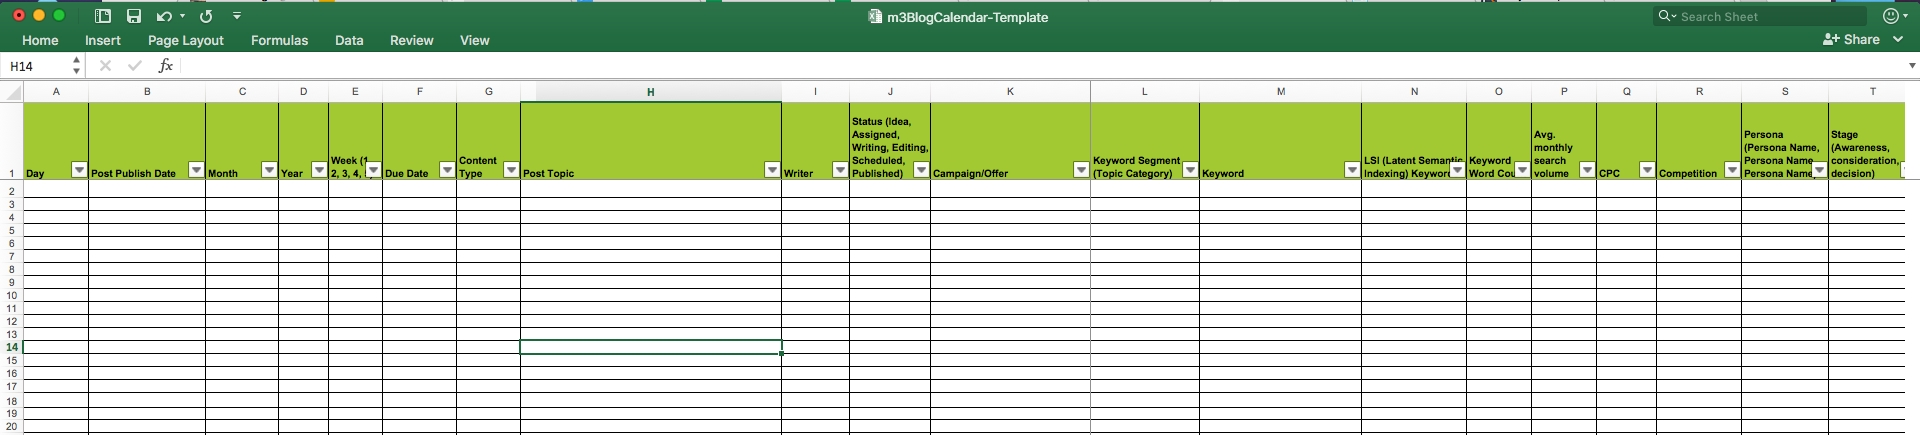 Editorial Calendar Templates For Content Marketing: The Ultimate List pertaining to Social Media Content Calendar Excel Template Free